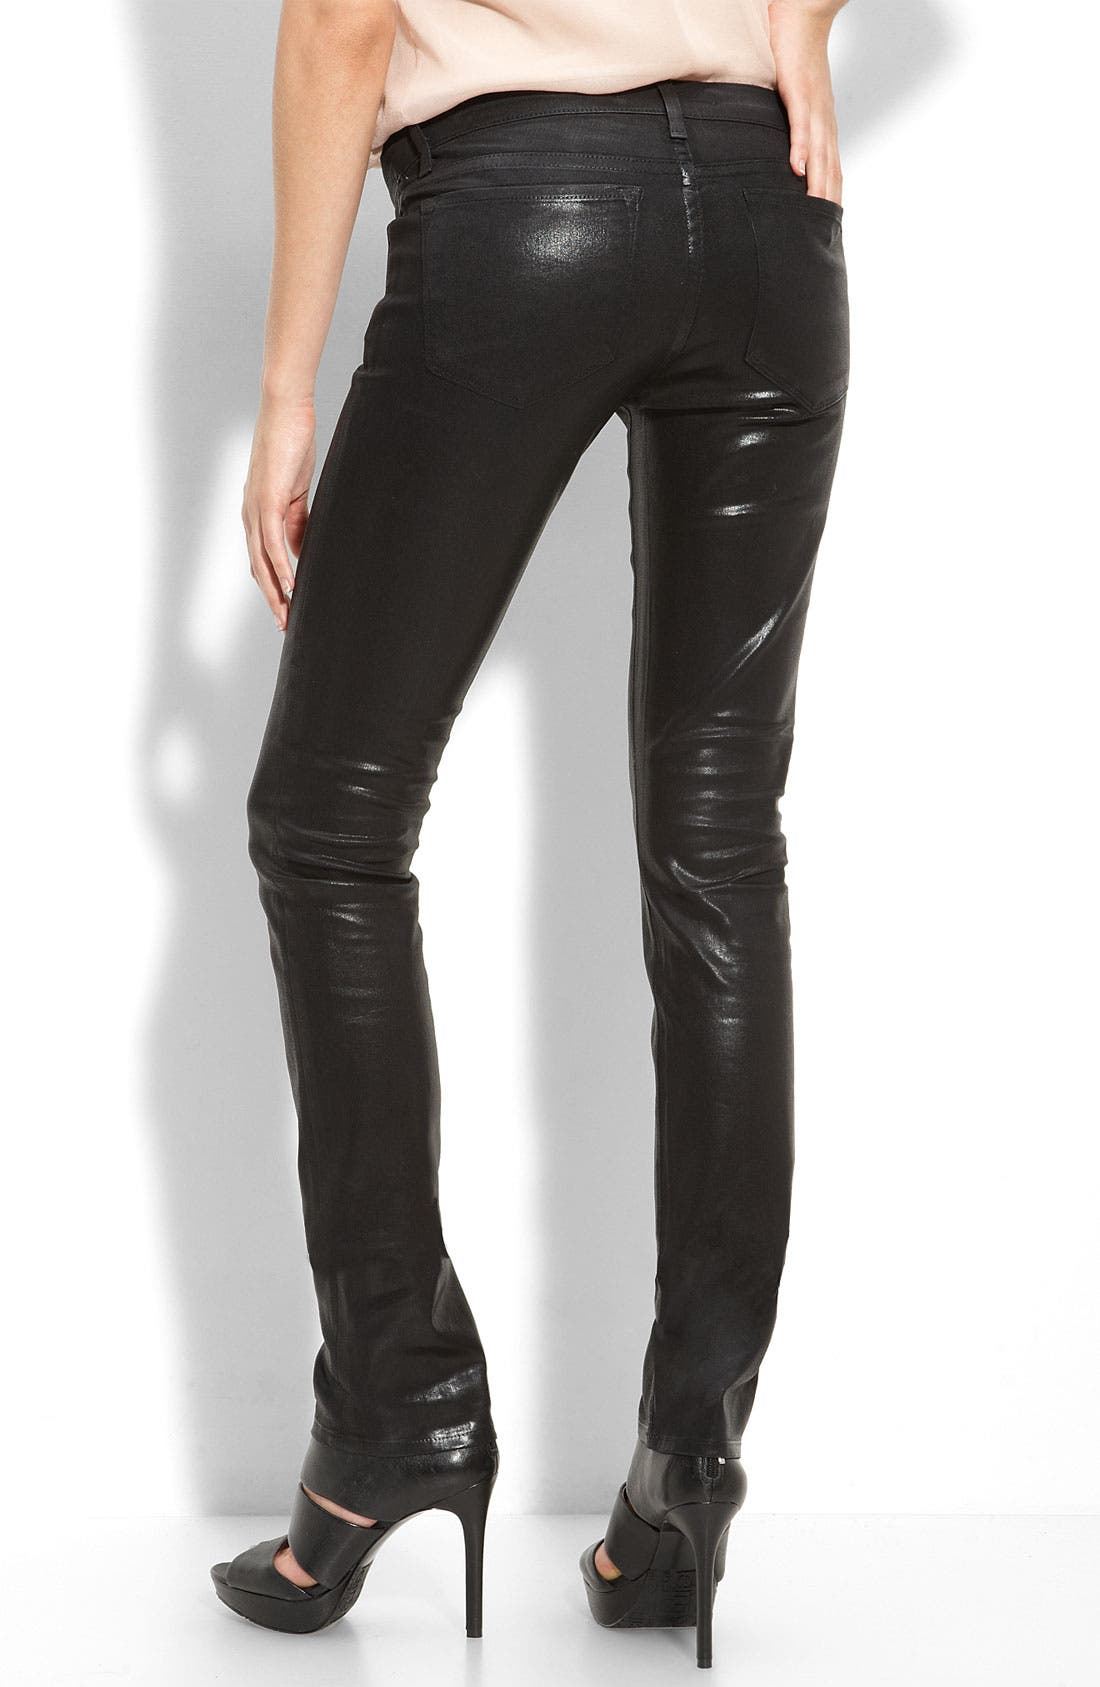 J BRAND, Skinny Stretch Jeans, Main thumbnail 1, color, 008